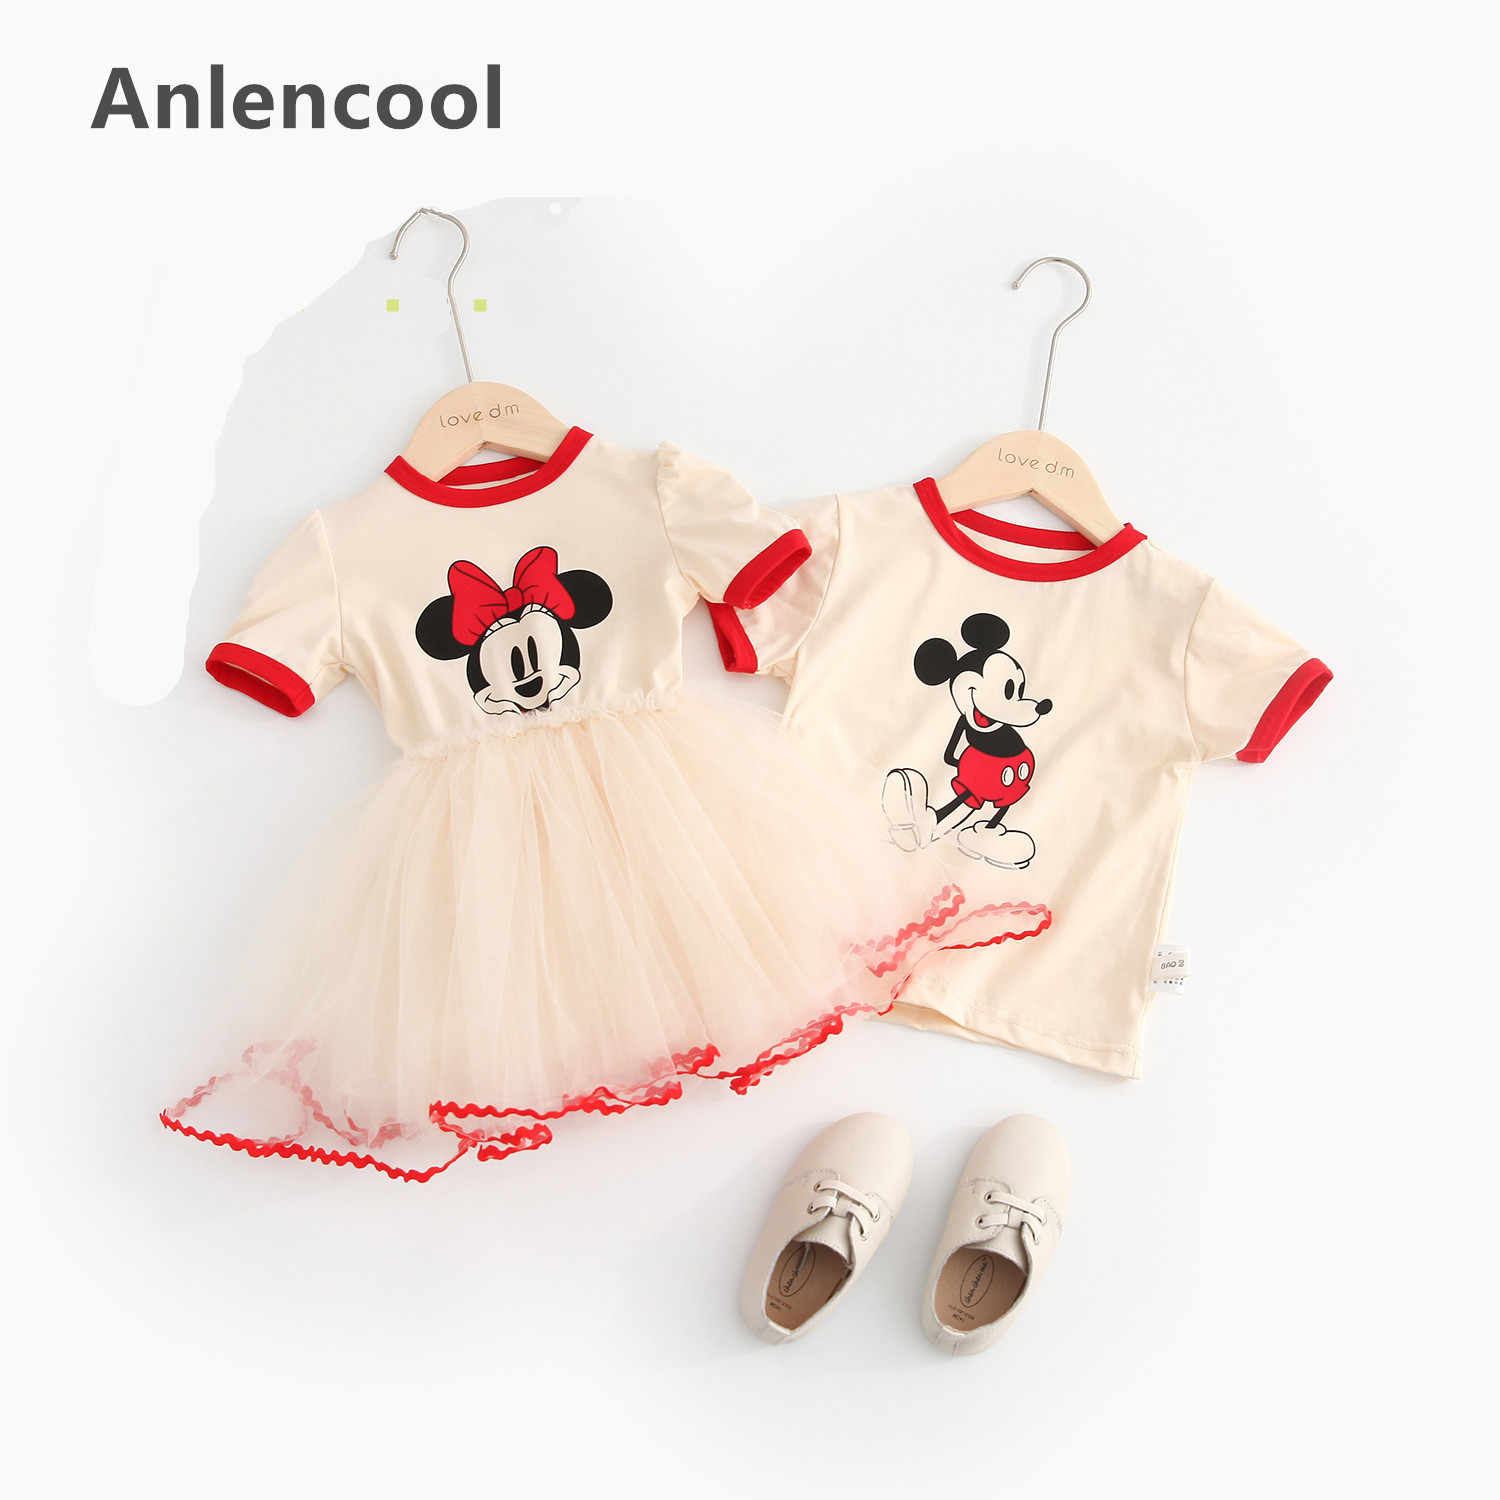 0888a4ed Anlencool Minnie & Mouse Clothes Set Kids Baby Girls Boys New Summer  Outfits Clothes Short Sleeve T-shirt Tops Tutu Party Dress